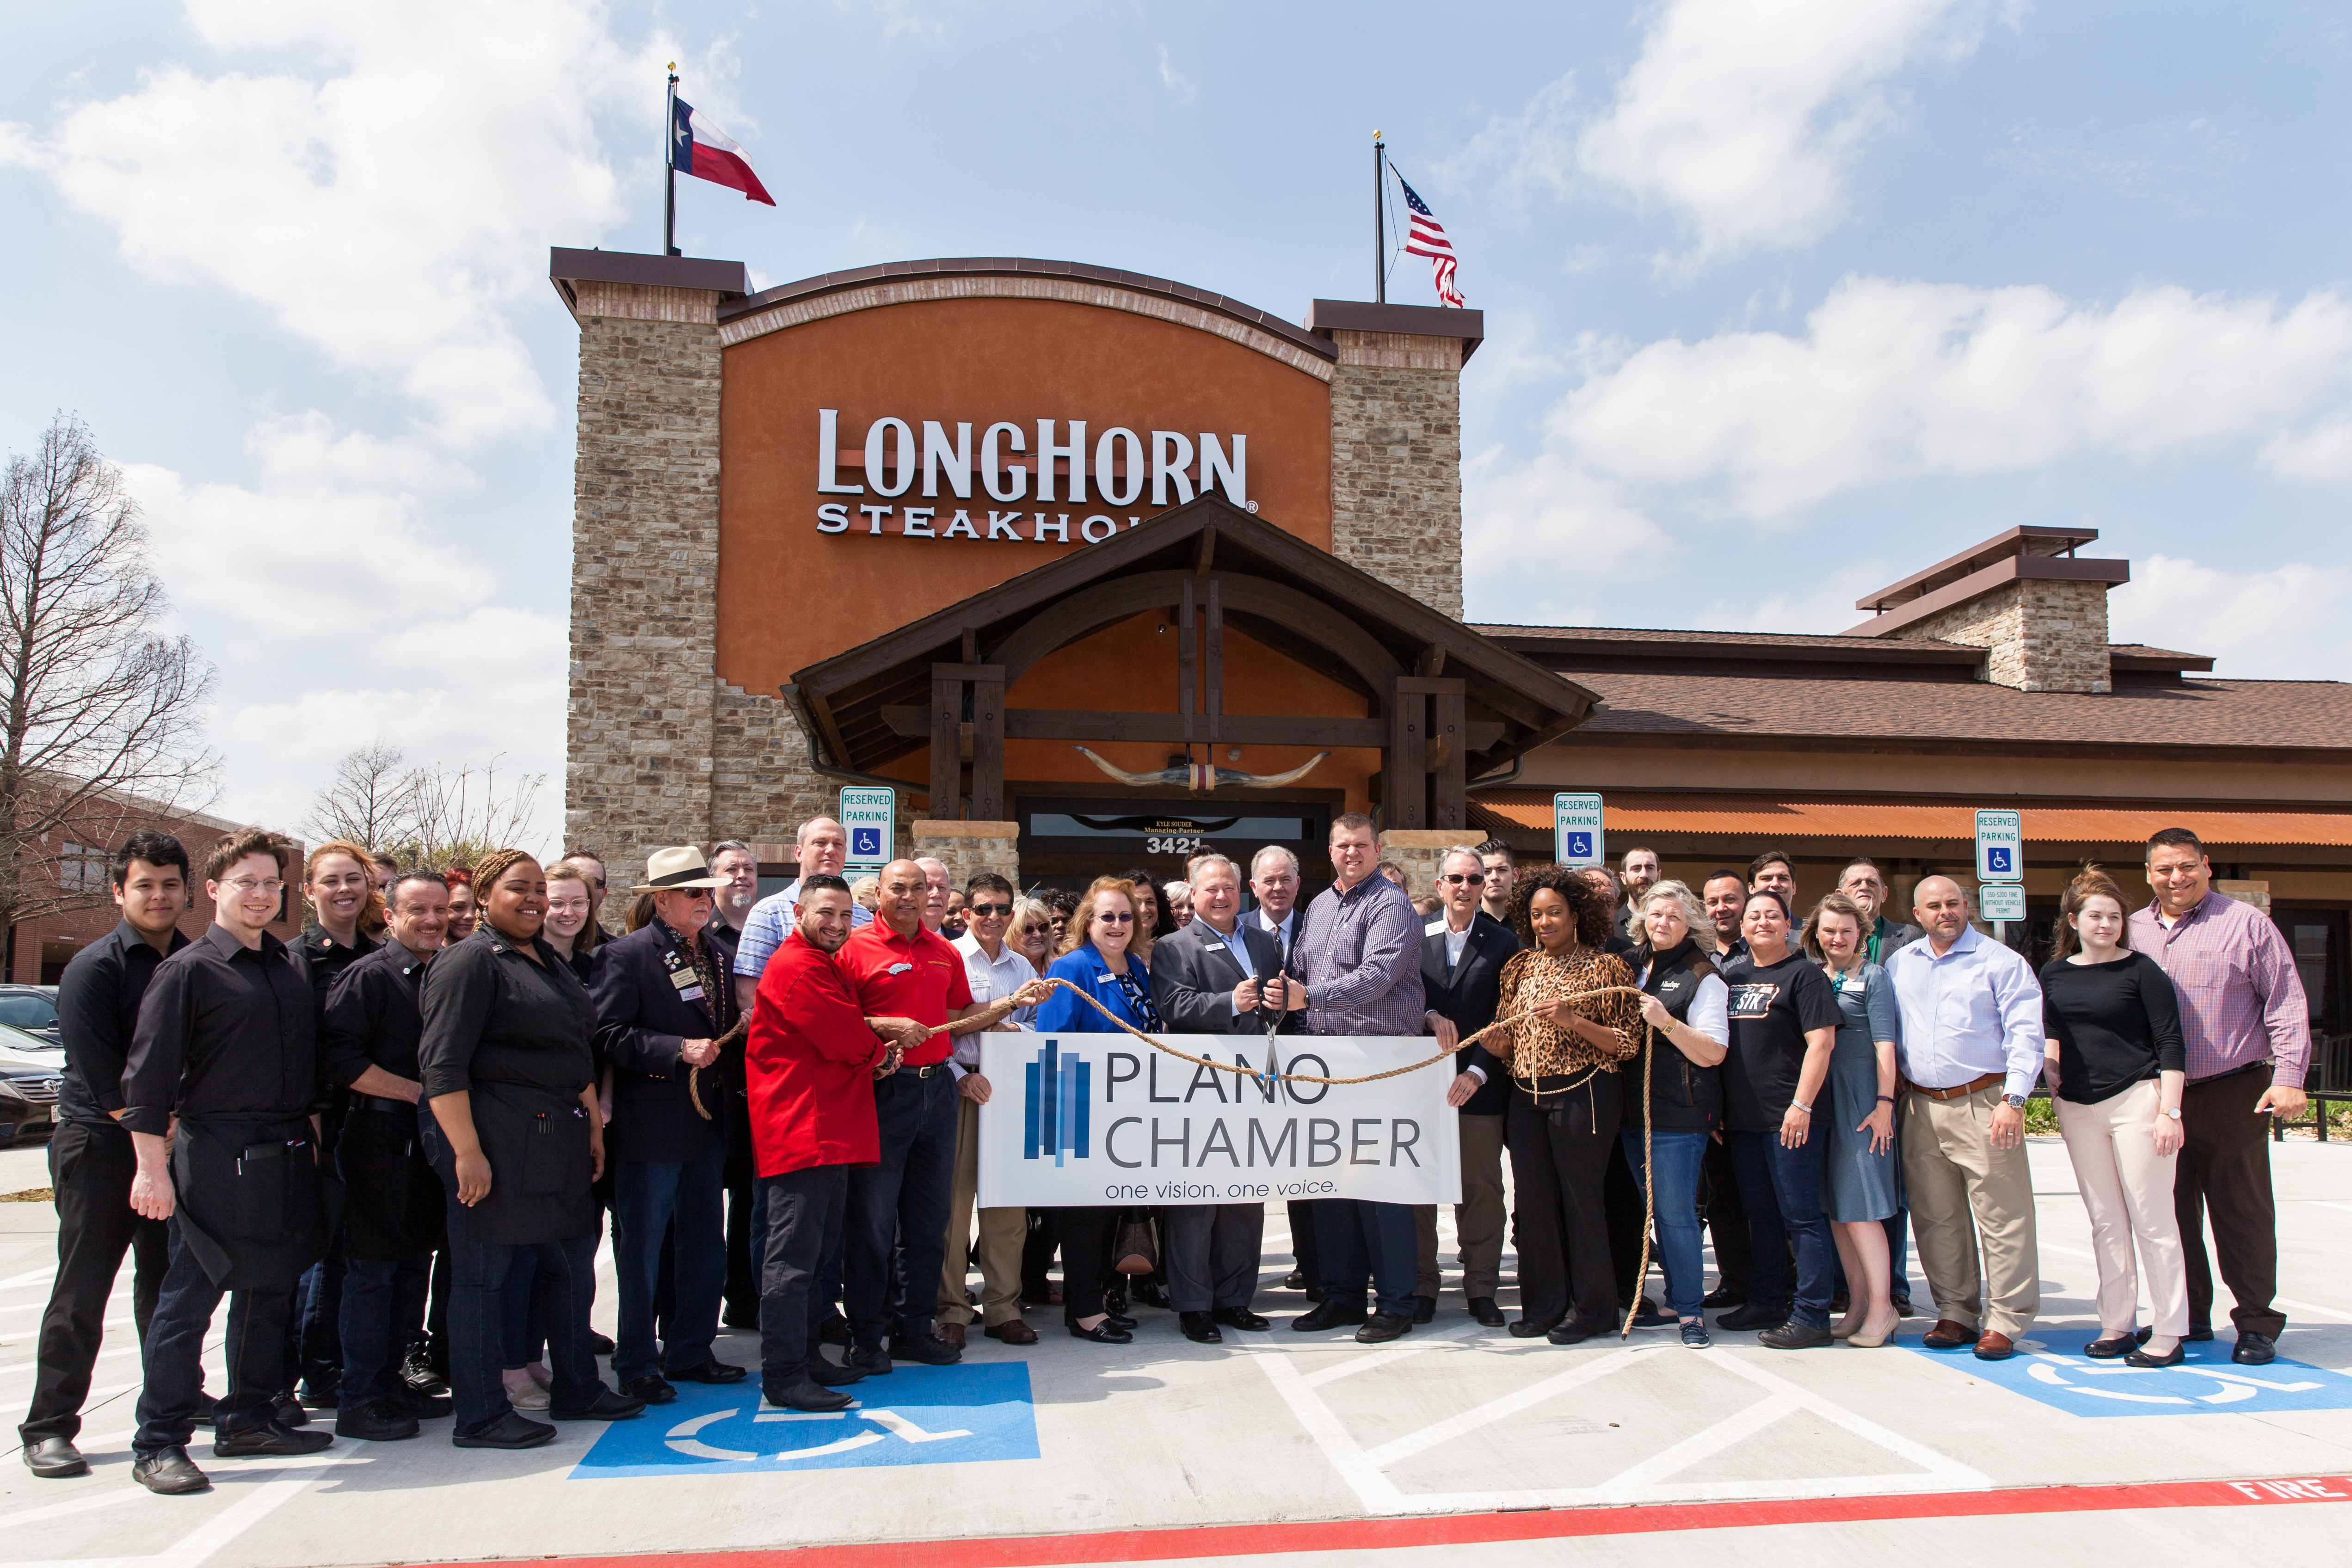 Great LongHorn Steakhouse ...